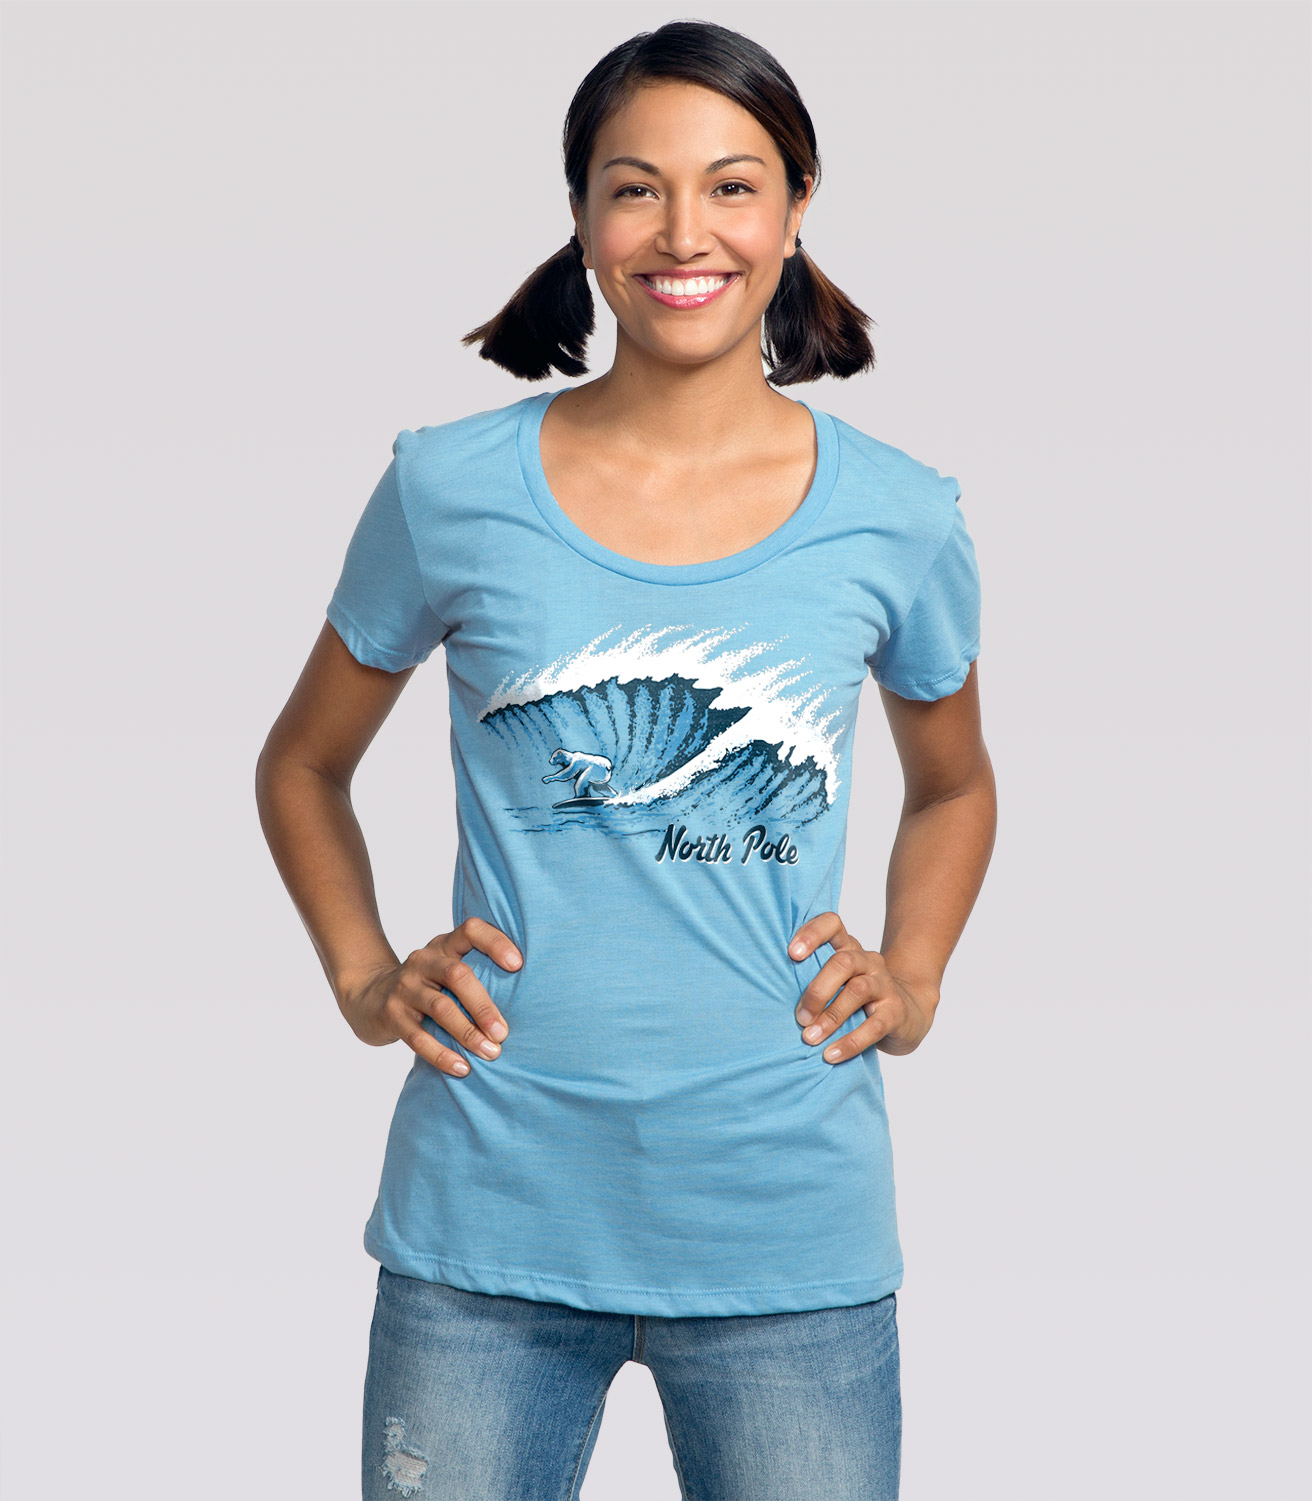 South pole clothing for women